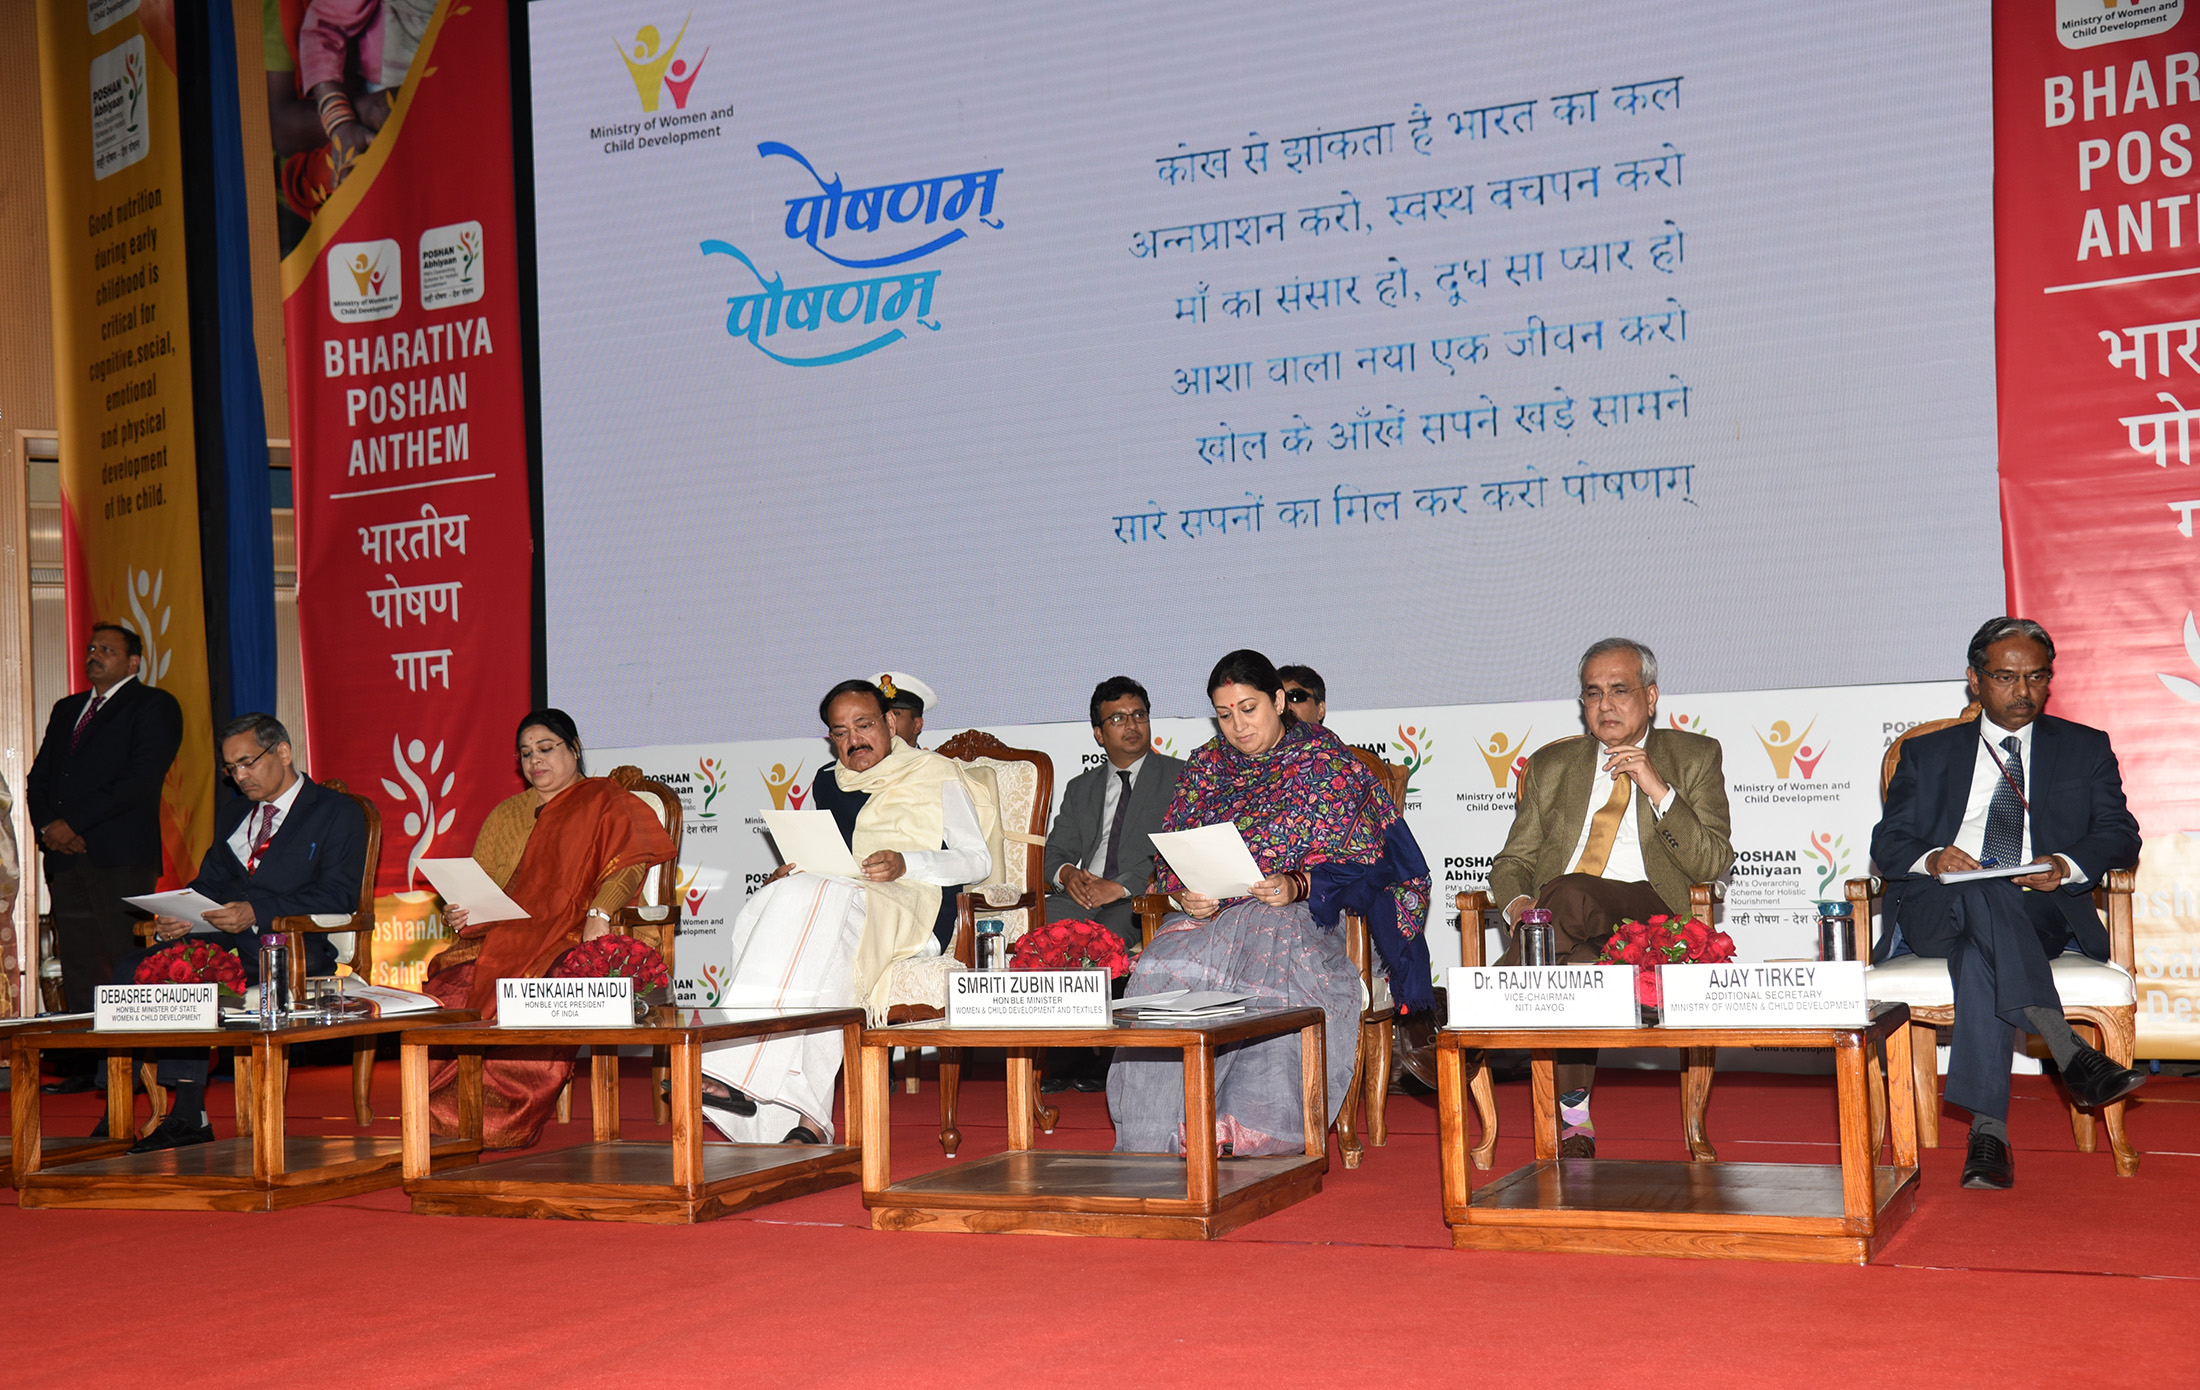 The Vice President, Shri M. Venkaiah Naidu at the launch of the 'POSHAN Anthem' at an event organized by the Ministry of Women and Child Development, in New Delhi on 03 December, 2019.